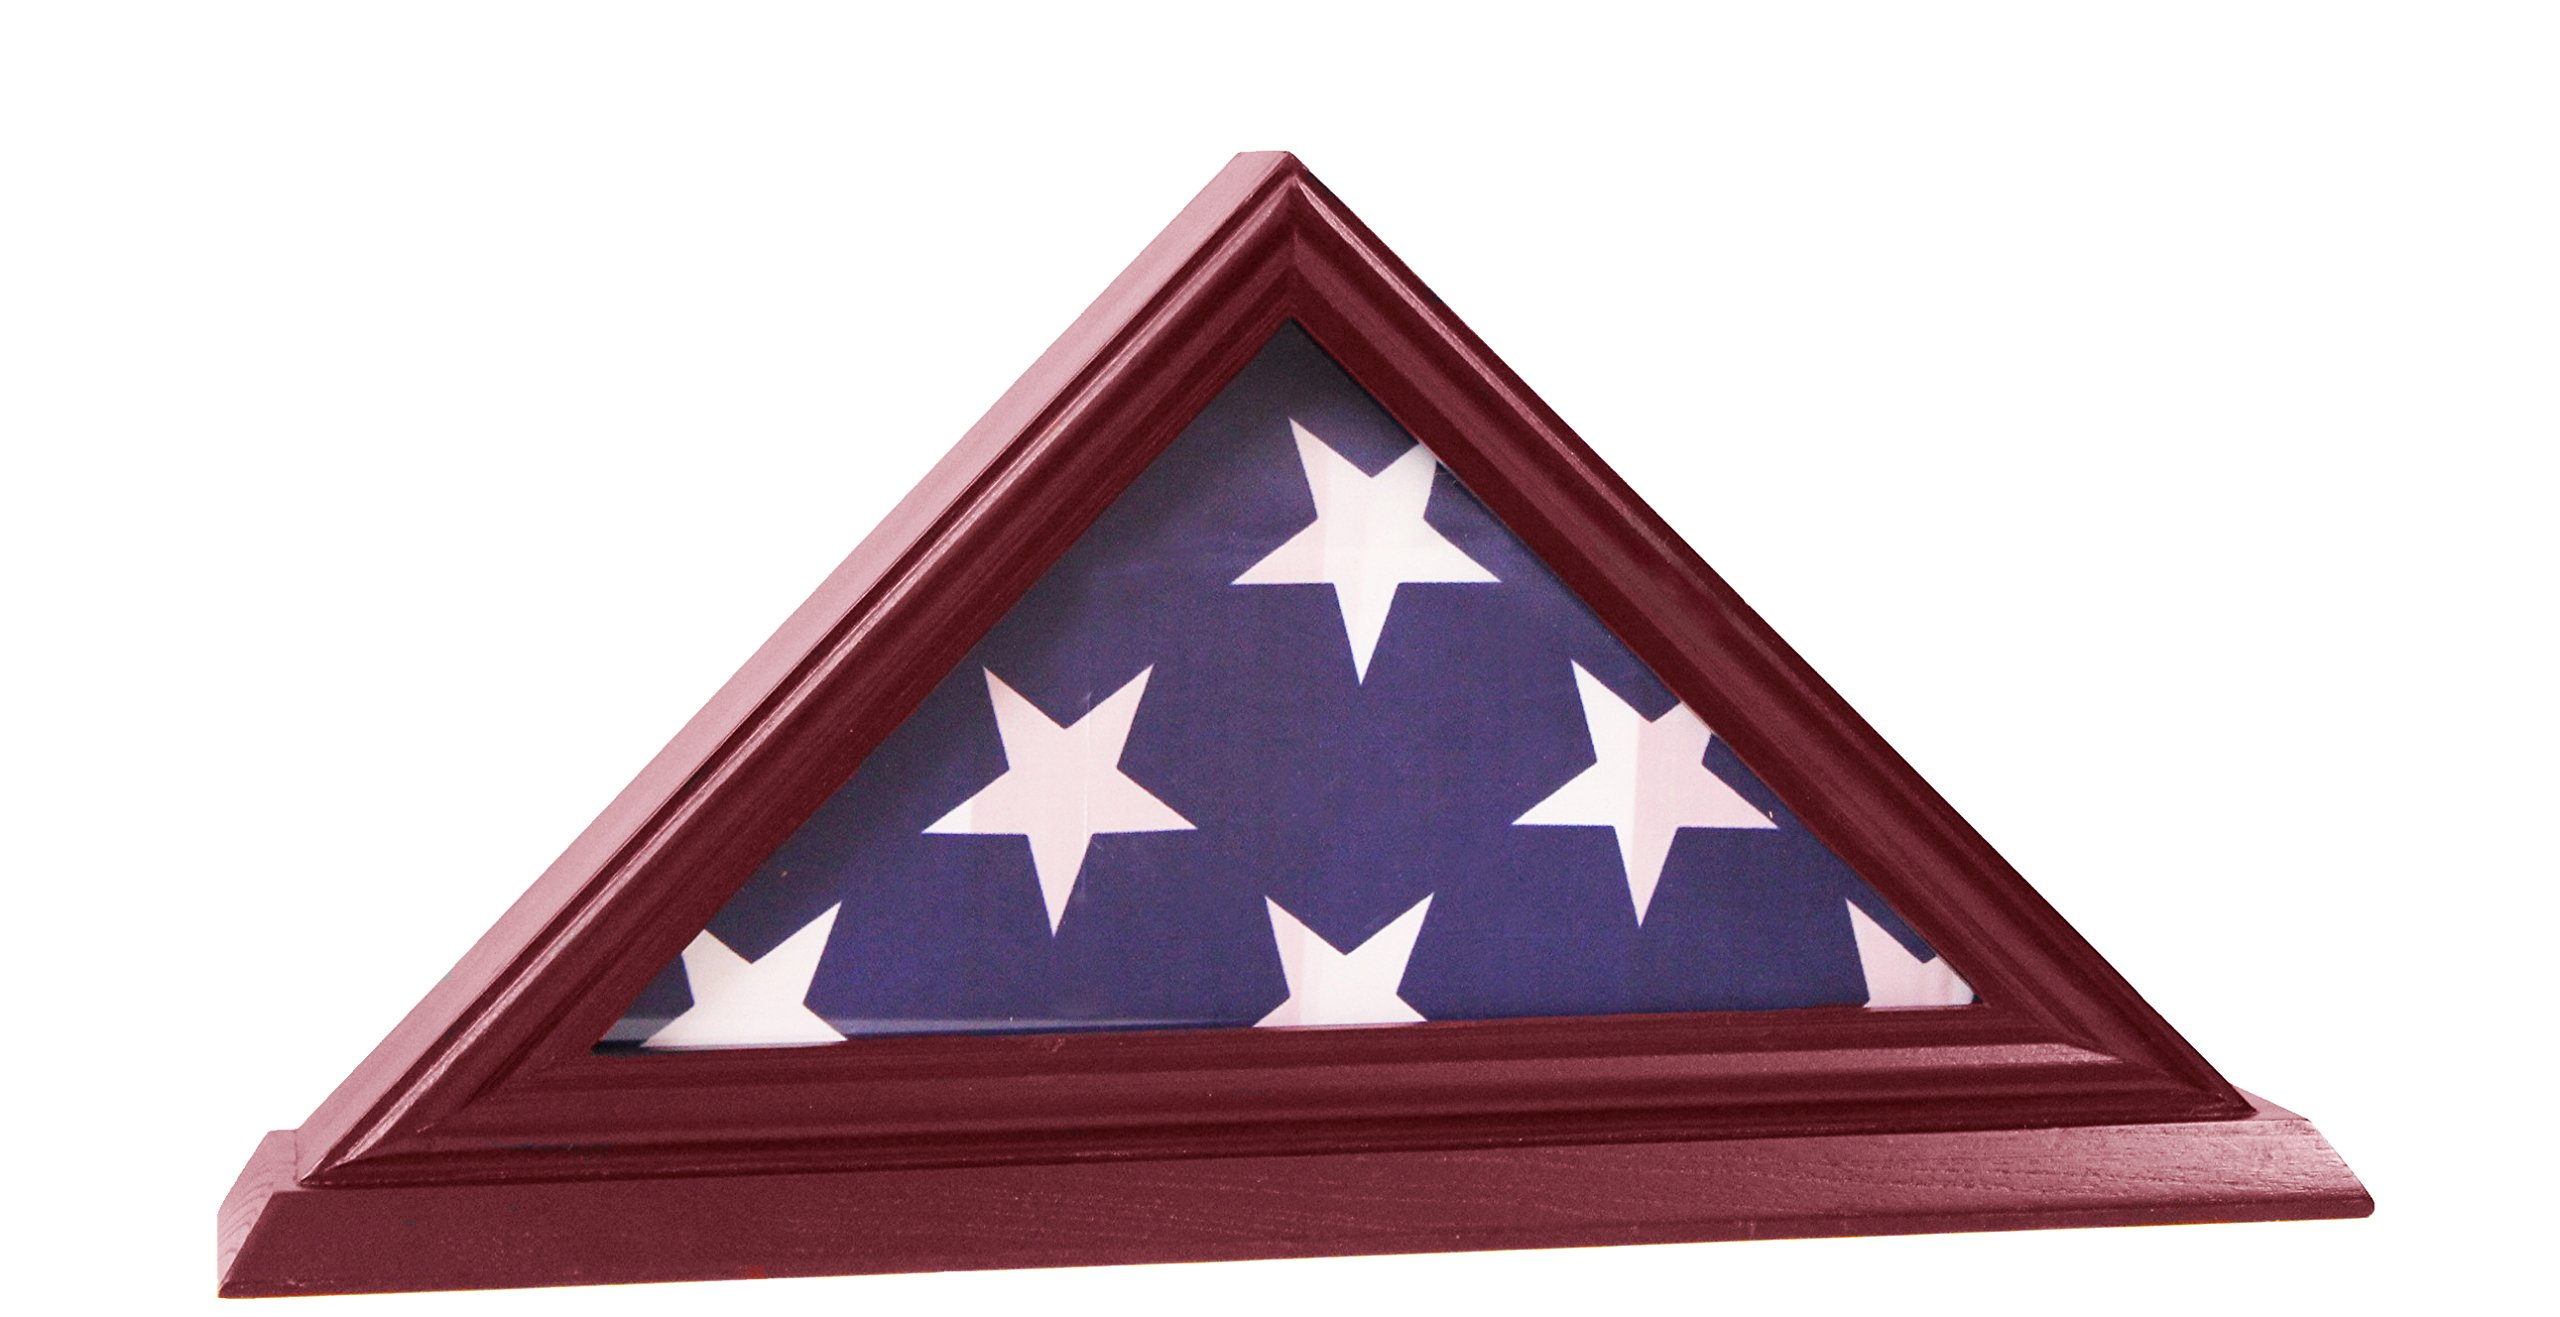 DECOMIL - 3'x5' Flag Display Case, Shadow Box (Not for Burial Funeral Flag), Solid Wood, Cherry Finish by DECOMIL